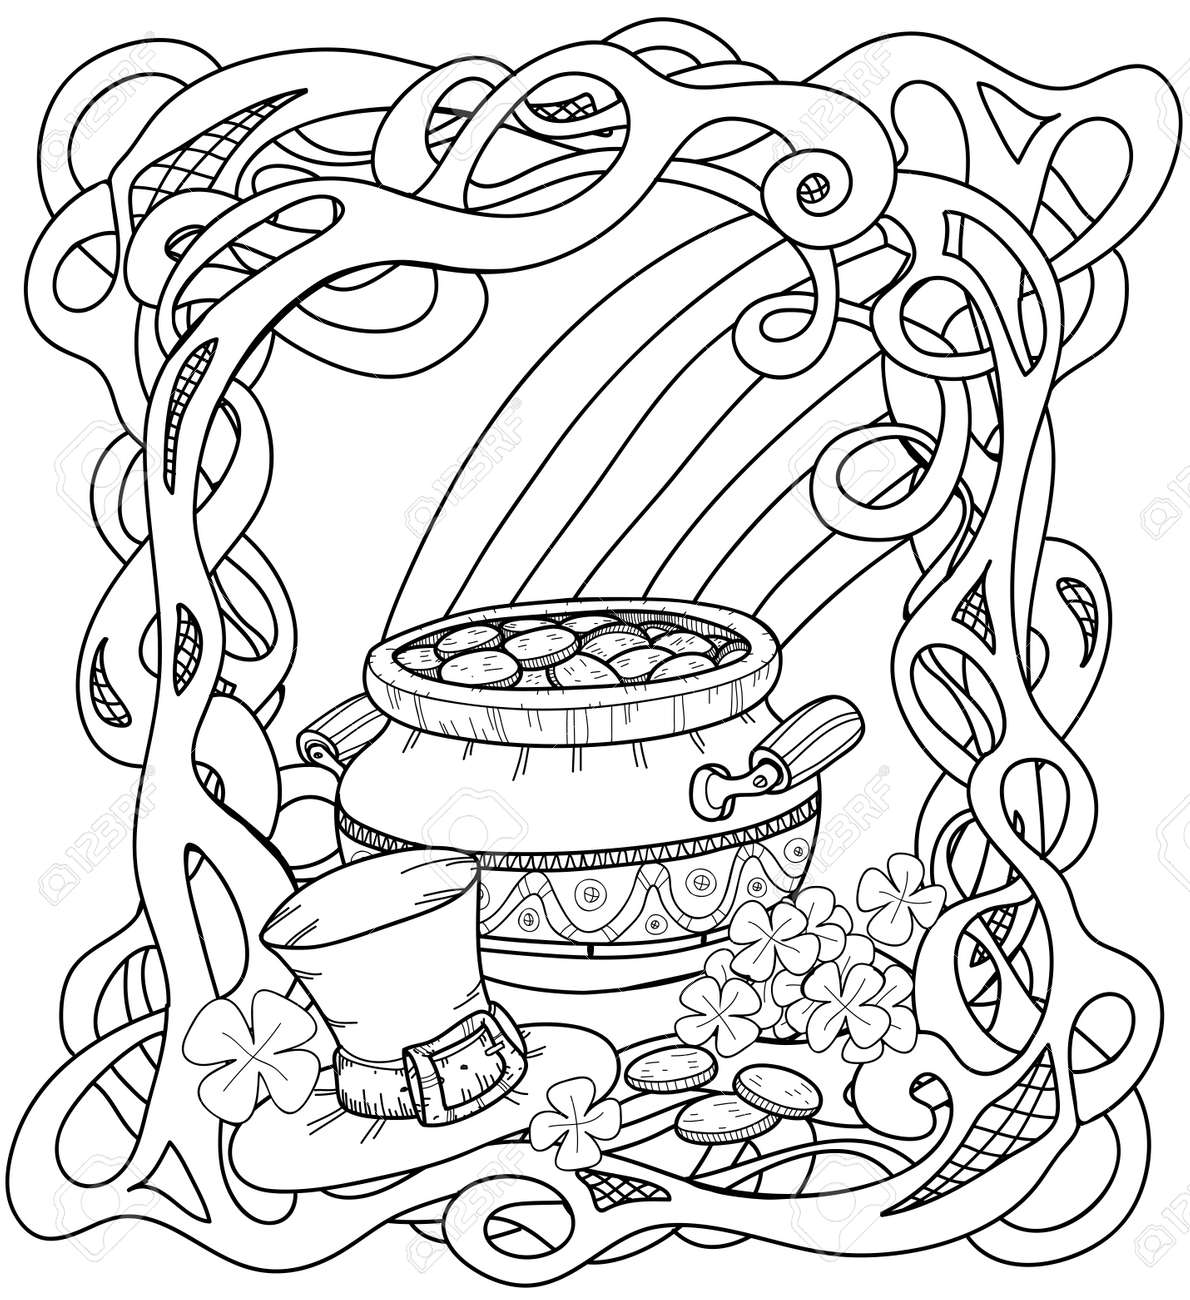 Leprechauns Gold Coloring Page With Pot Of Gold Rainbow Leprechaun Royalty Free Cliparts Vectors And Stock Illustration Image 50573606